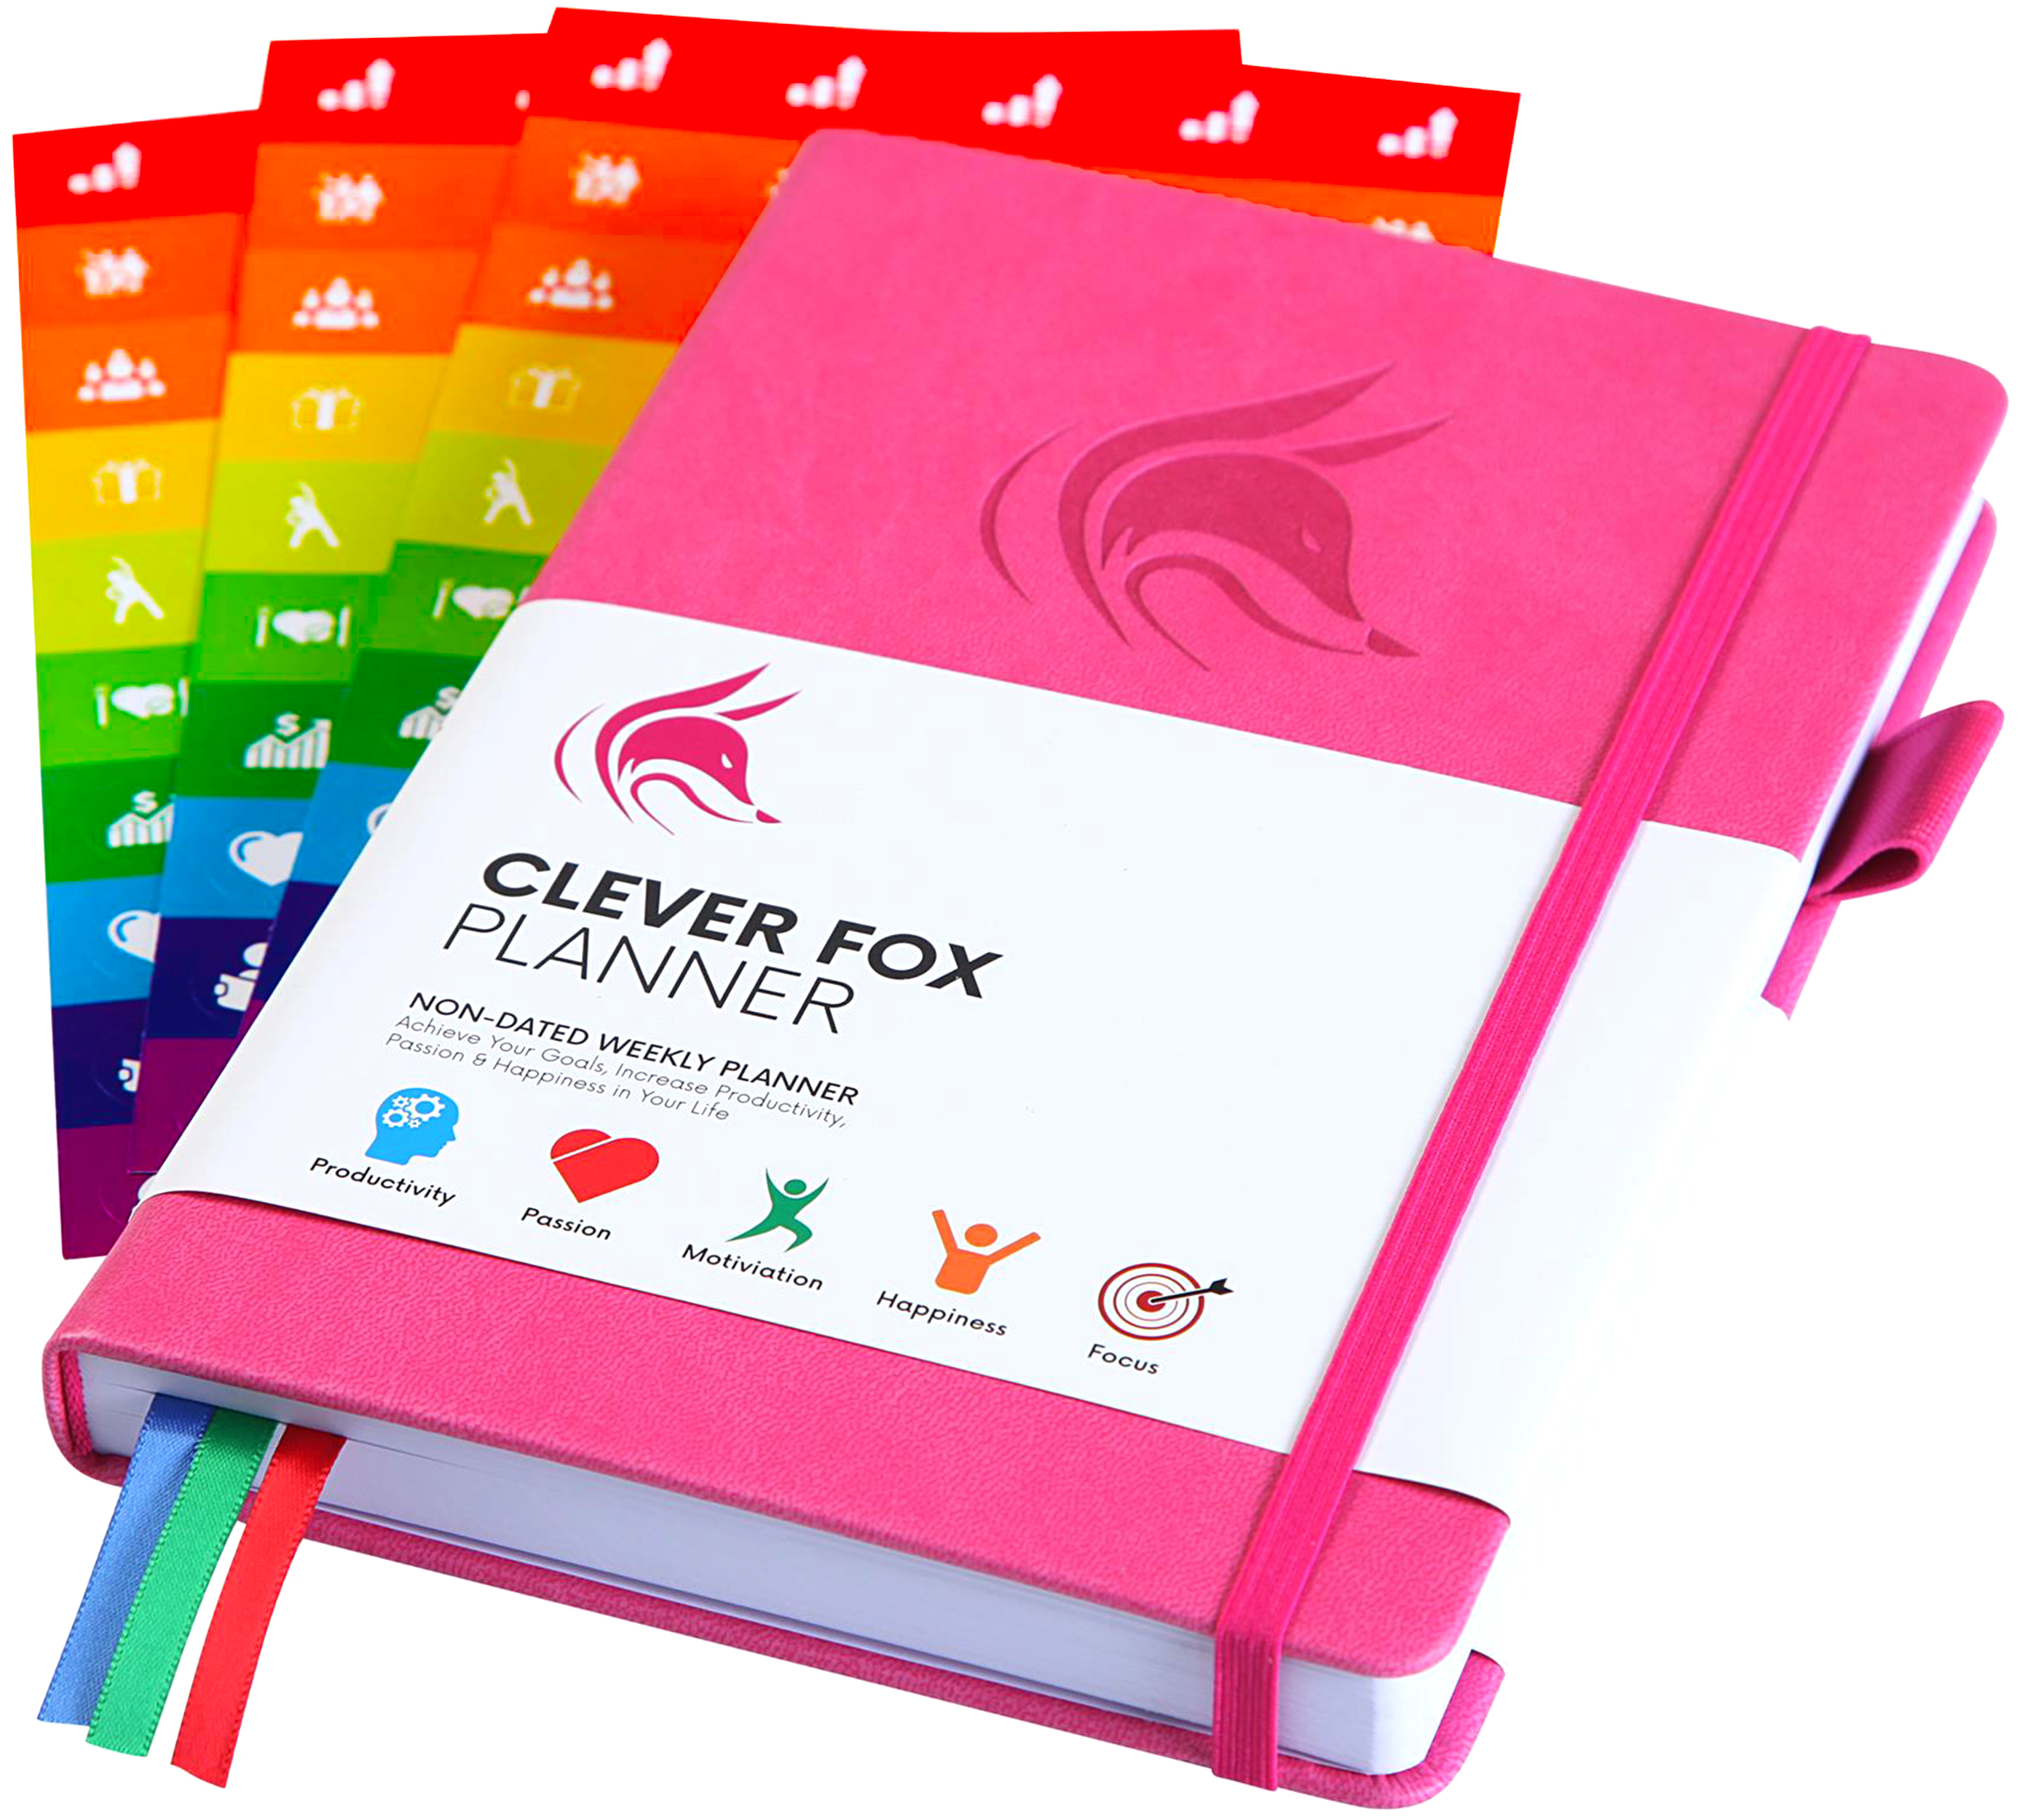 Clever Fox: Popular Planners For Every Budget